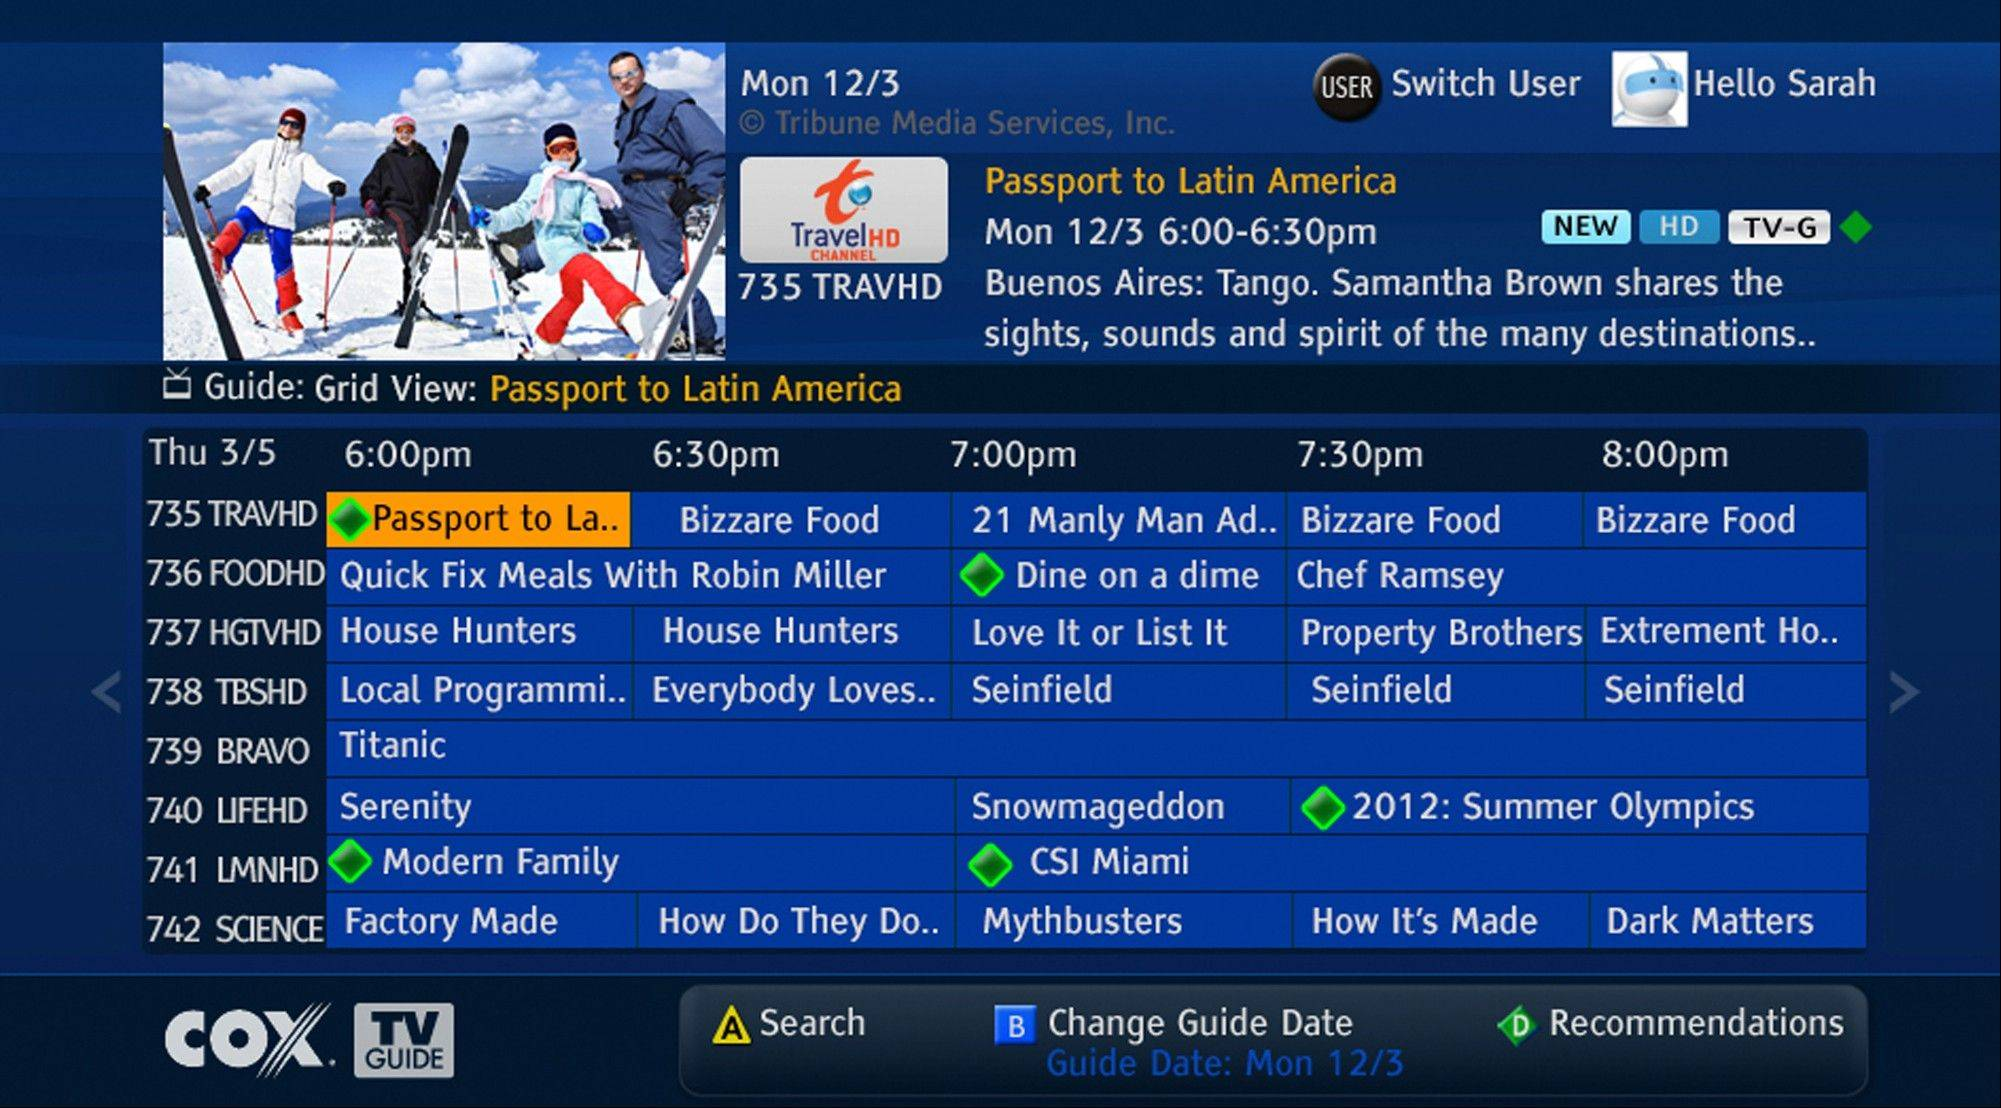 This image provided by Cox Communications shows a program guide for television set-top boxes to make it easier to find programs available live or on demand. It's an important development for cable TV companies, as they face criticisms for providing hundreds of channels that customers don't watch. Making shows easier to find helps the companies justify all those channels.